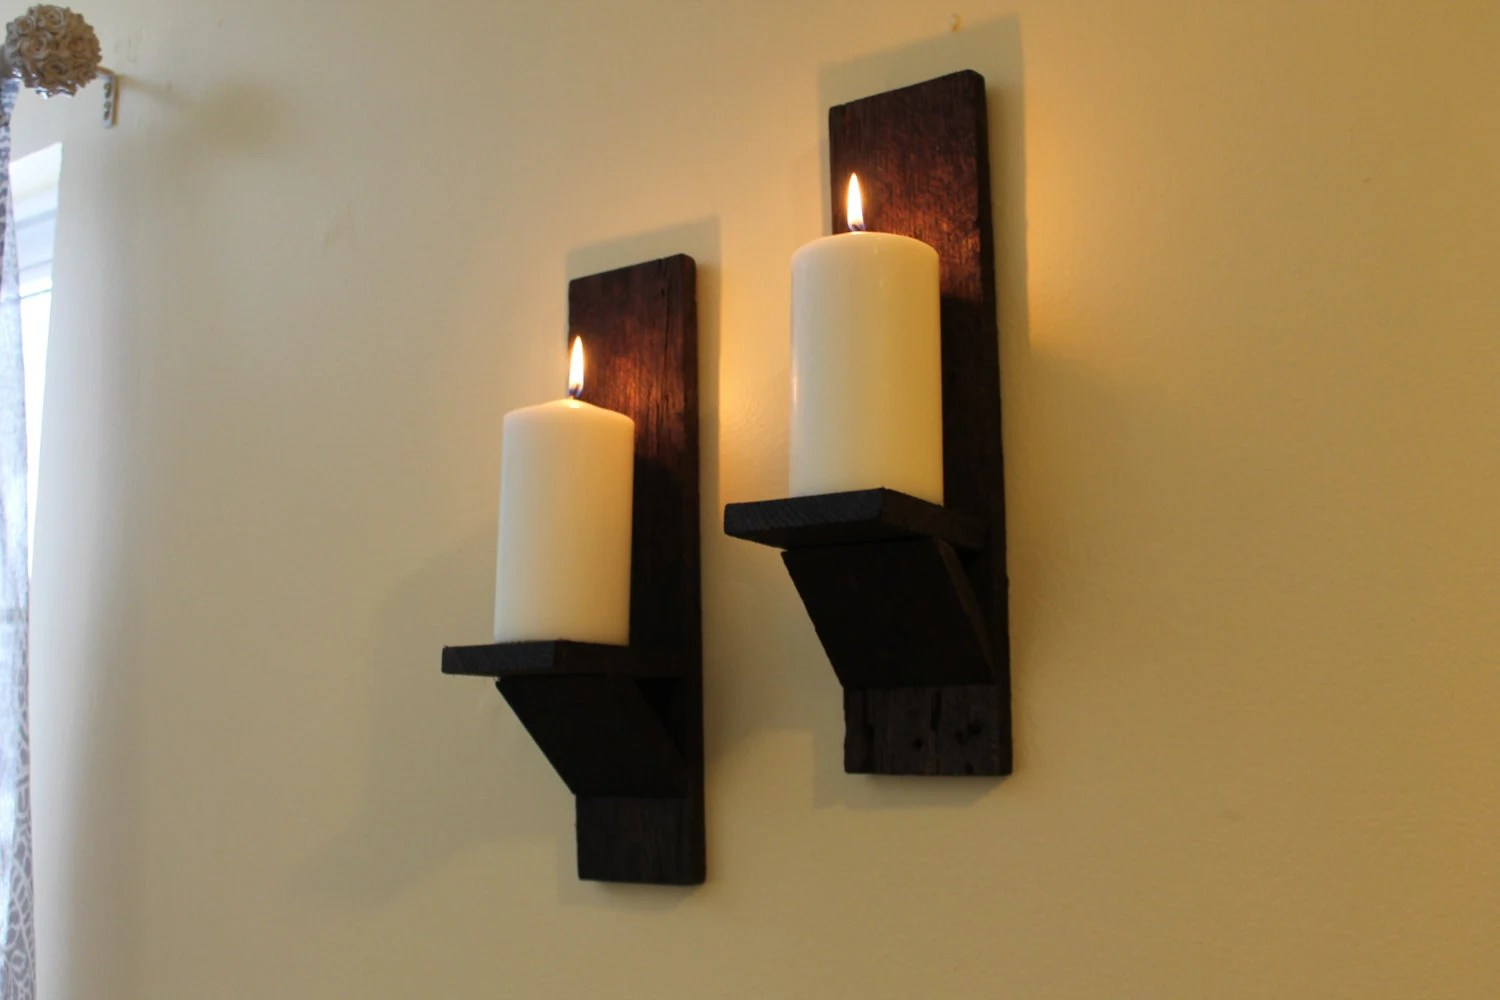 Pallet Wood Wall Sconces Rustic Wall Sconces Re-purposed on Wood Wall Sconces id=31296